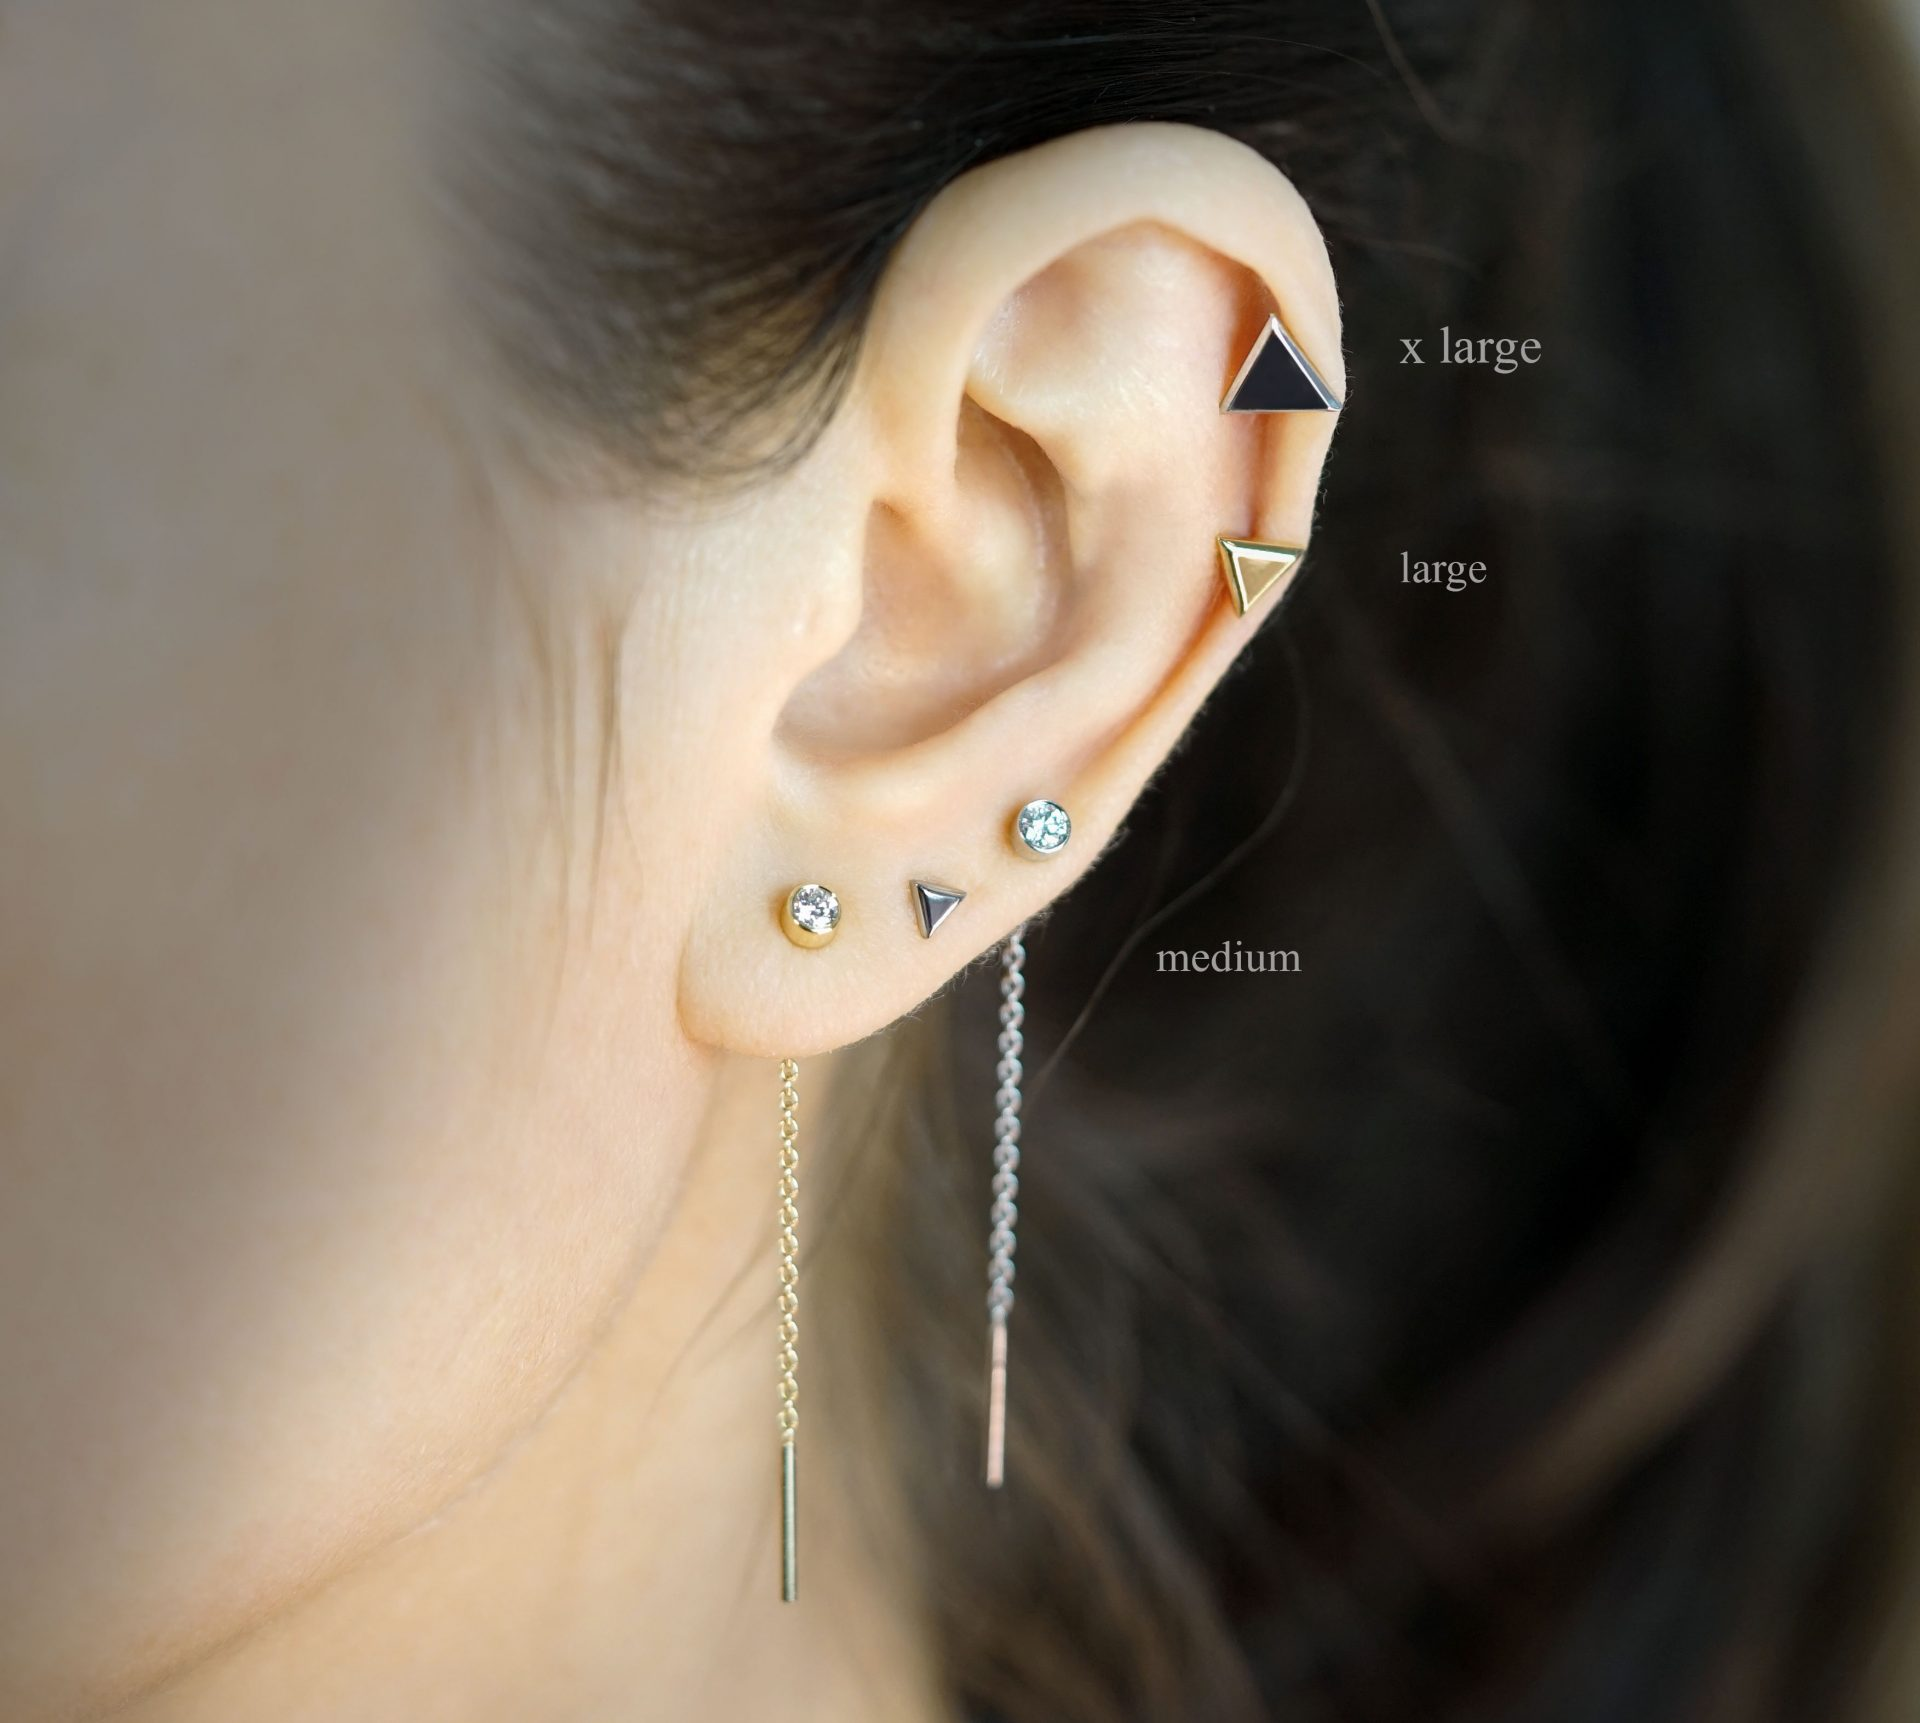 unisex-piercing-jewellery-18k-solid-yellow-white-gold-cartilage-earring-stud-lena-cohen